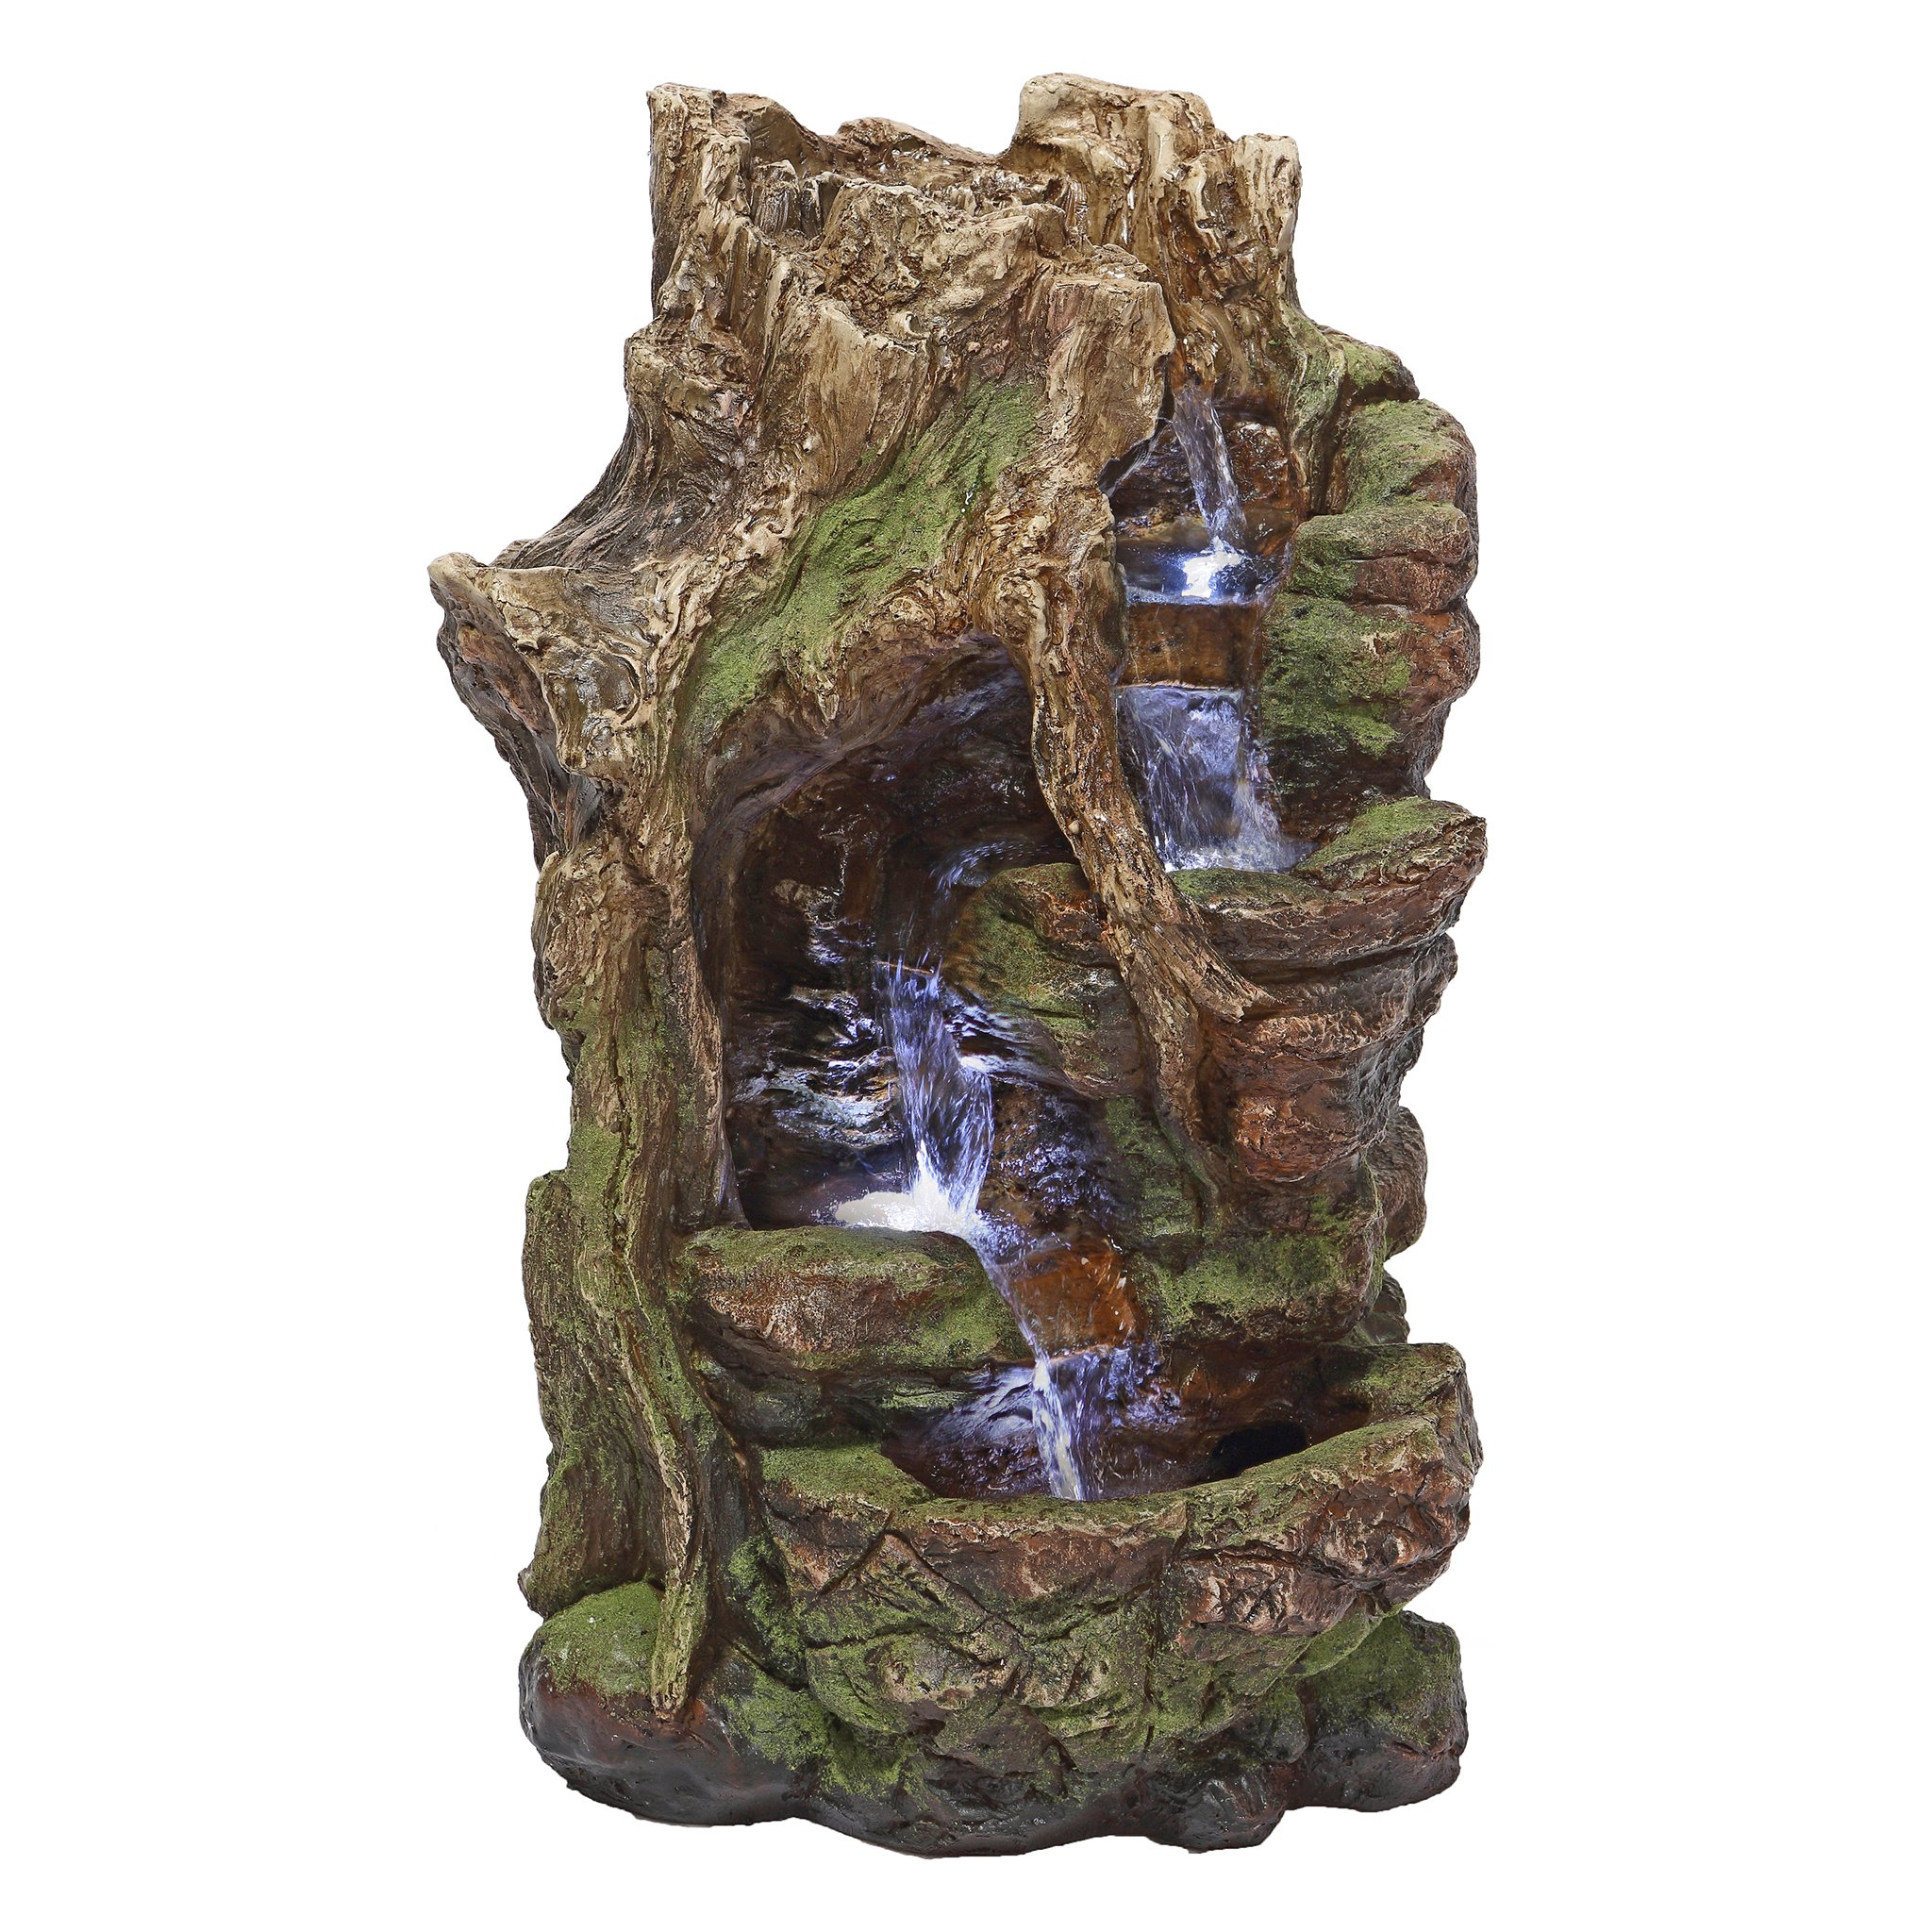 Design Toscano Willow Bend Illuminated Garden Fountain